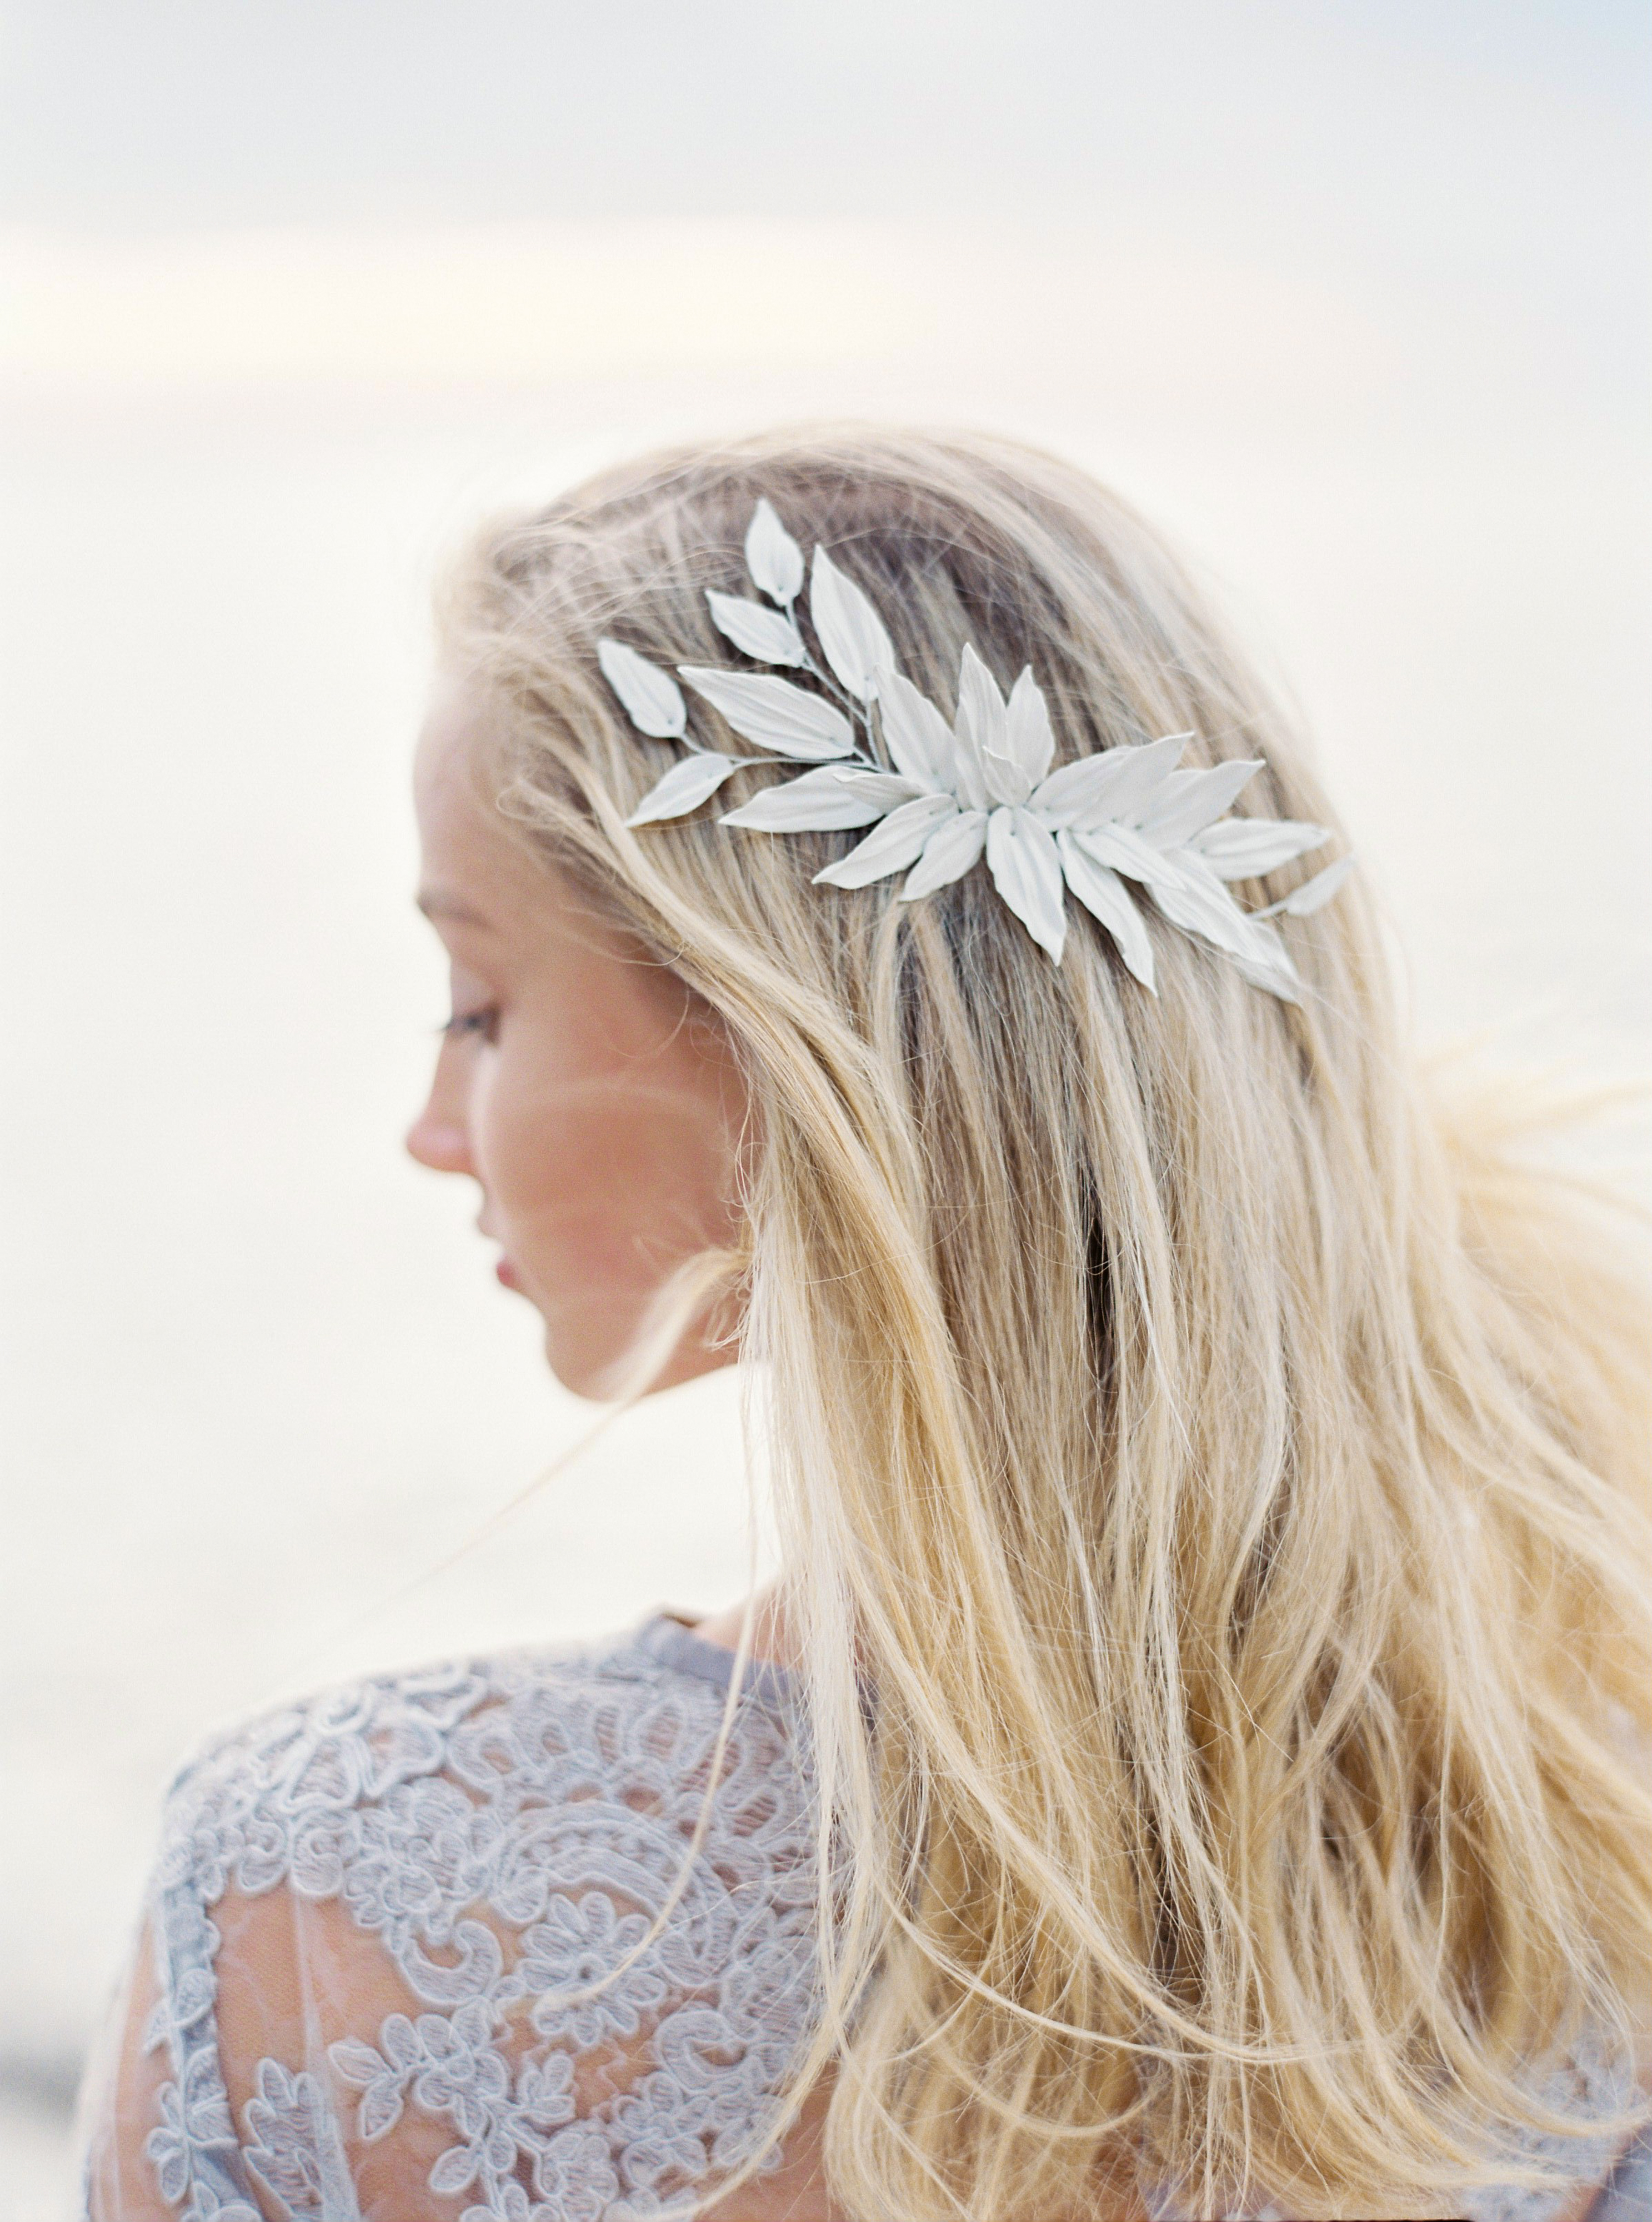 A hair comb with a collection of porcelain leaves was perfect for this beach bride, whose wedding was planned by Elins Art Studio. When you're selecting hair accessories for your big day, considering your destination will help ensure your bridal look feels cohesive with the locale.